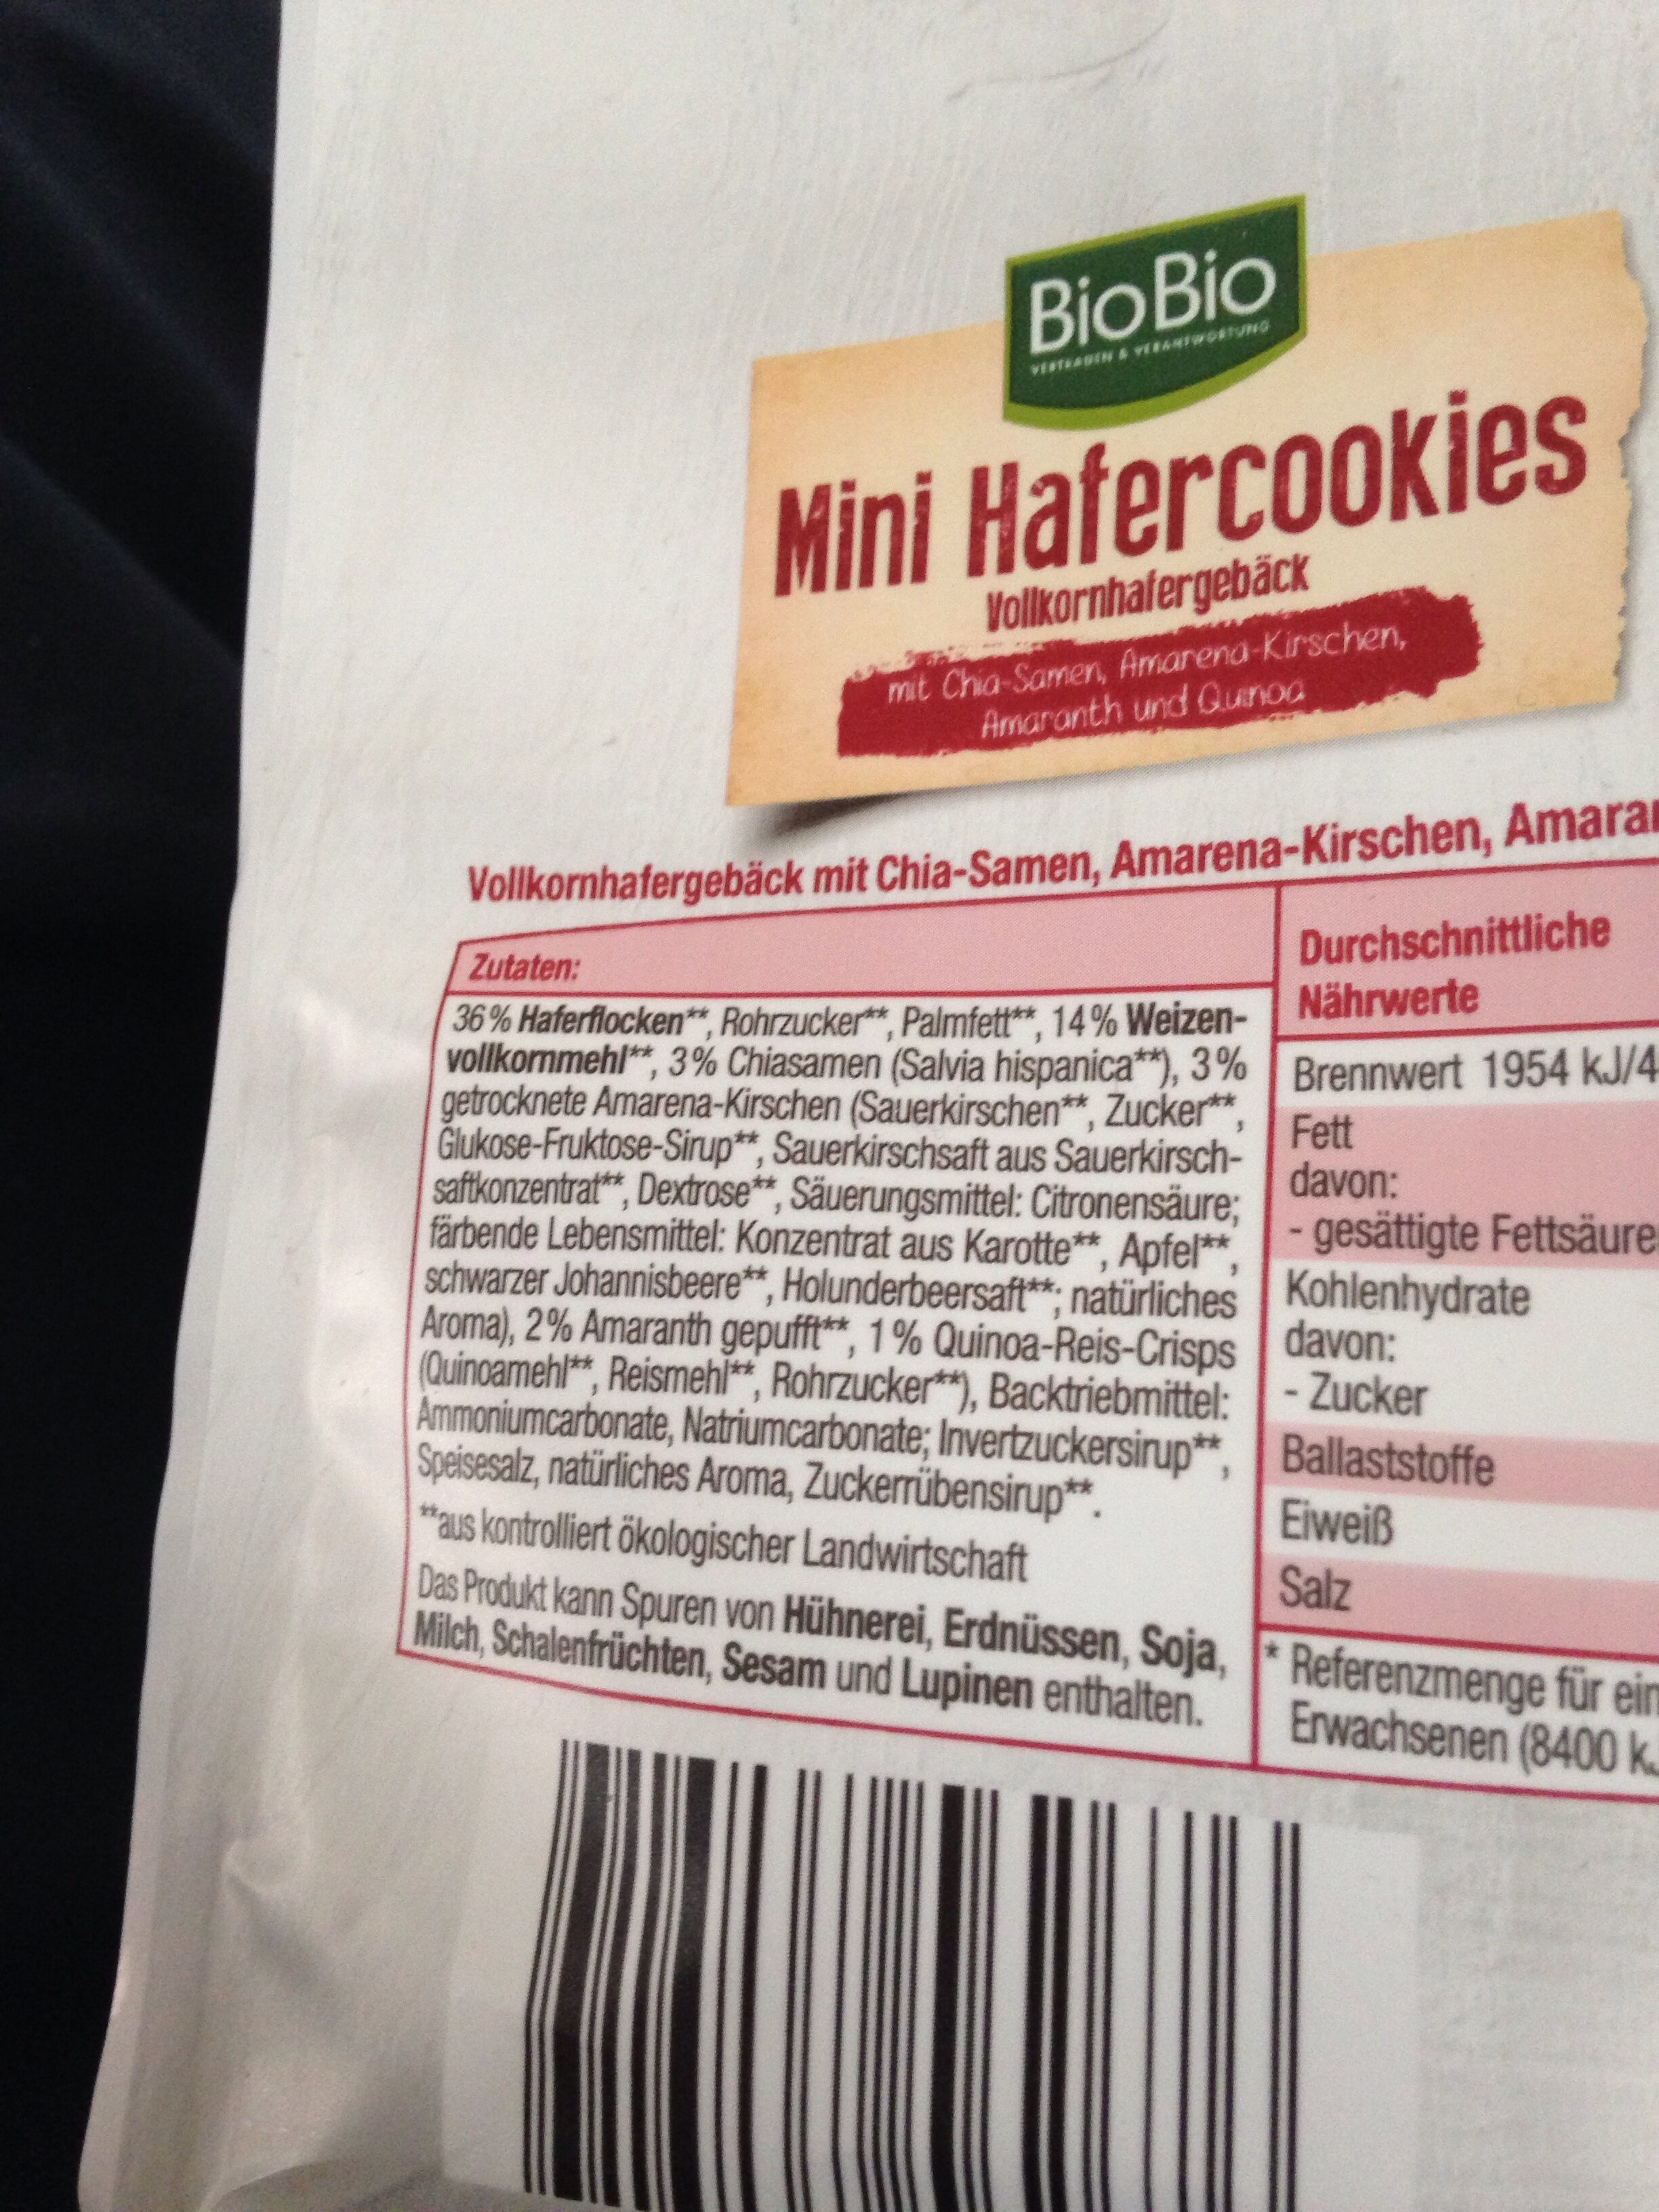 Mini Hafercookies,Kirsche - Ingredients - de